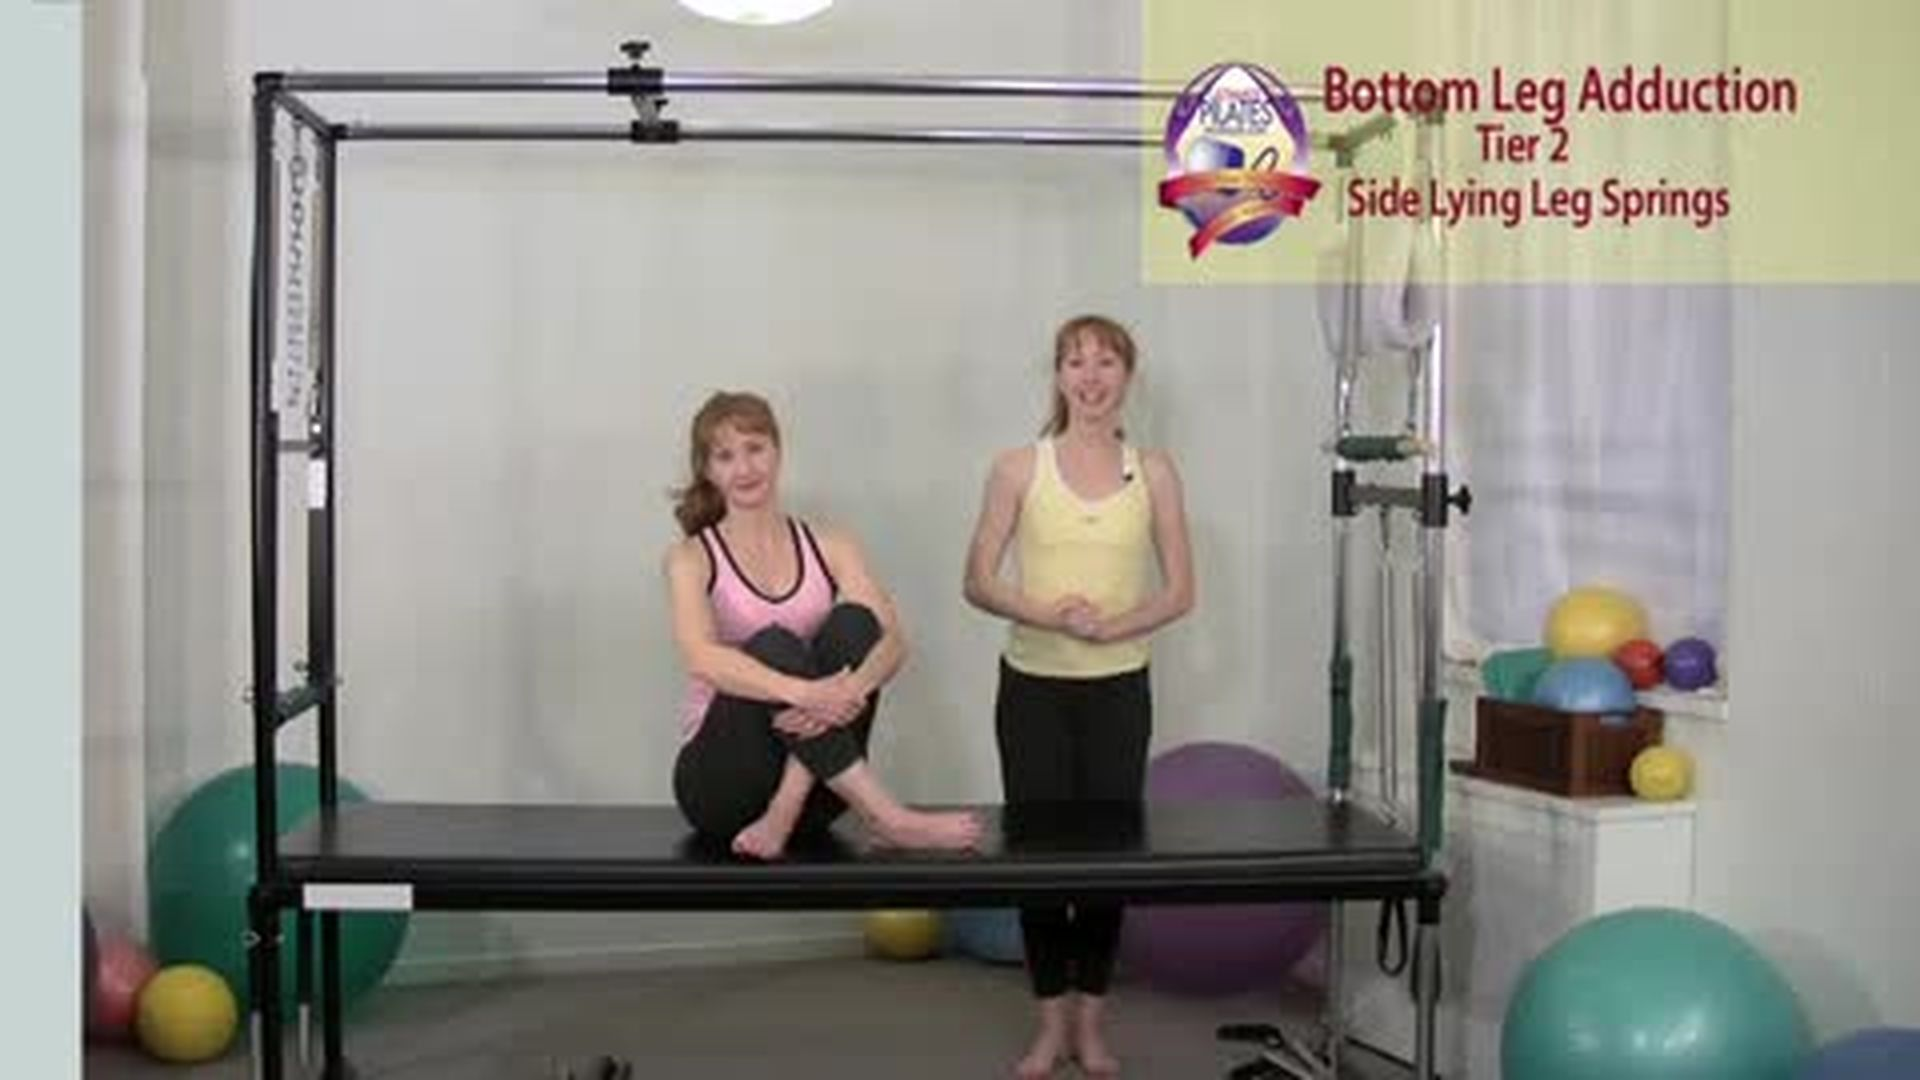 Side Lying Bottom Leg Adduction